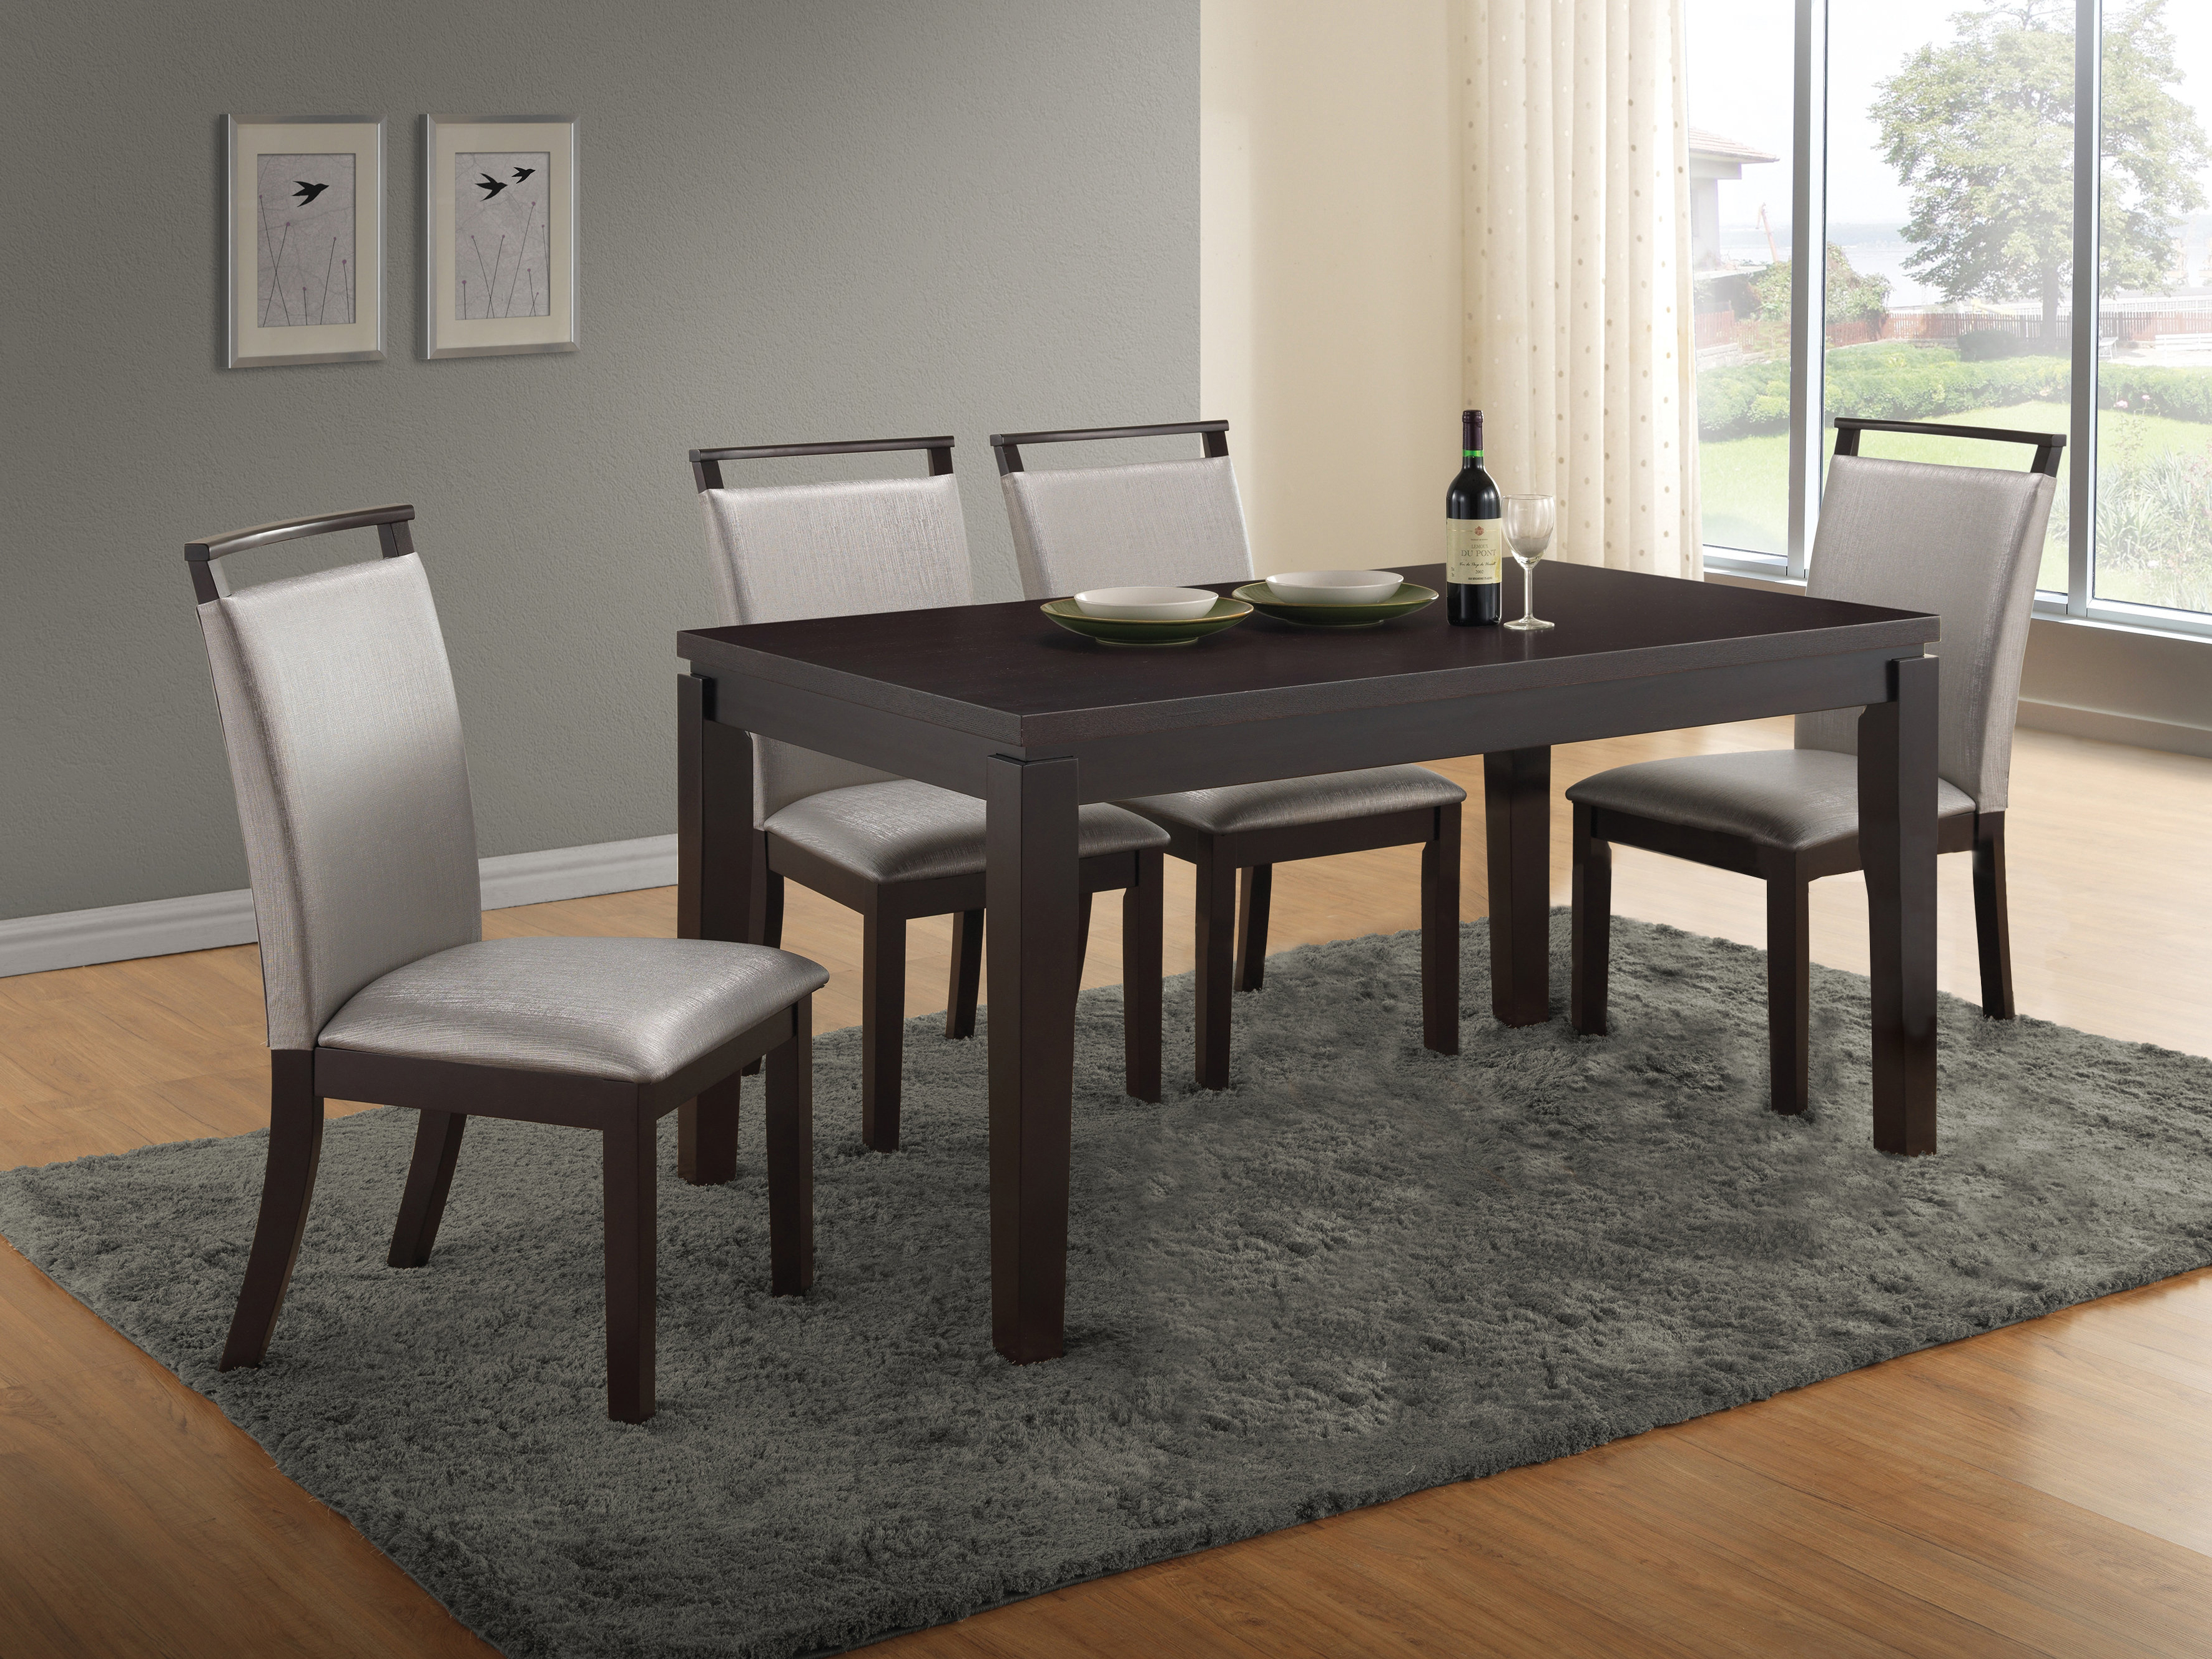 Most Recent Baillie 3 Piece Dining Sets Intended For Wimbish 5 Piece Solid Wood Dining Set (View 13 of 20)